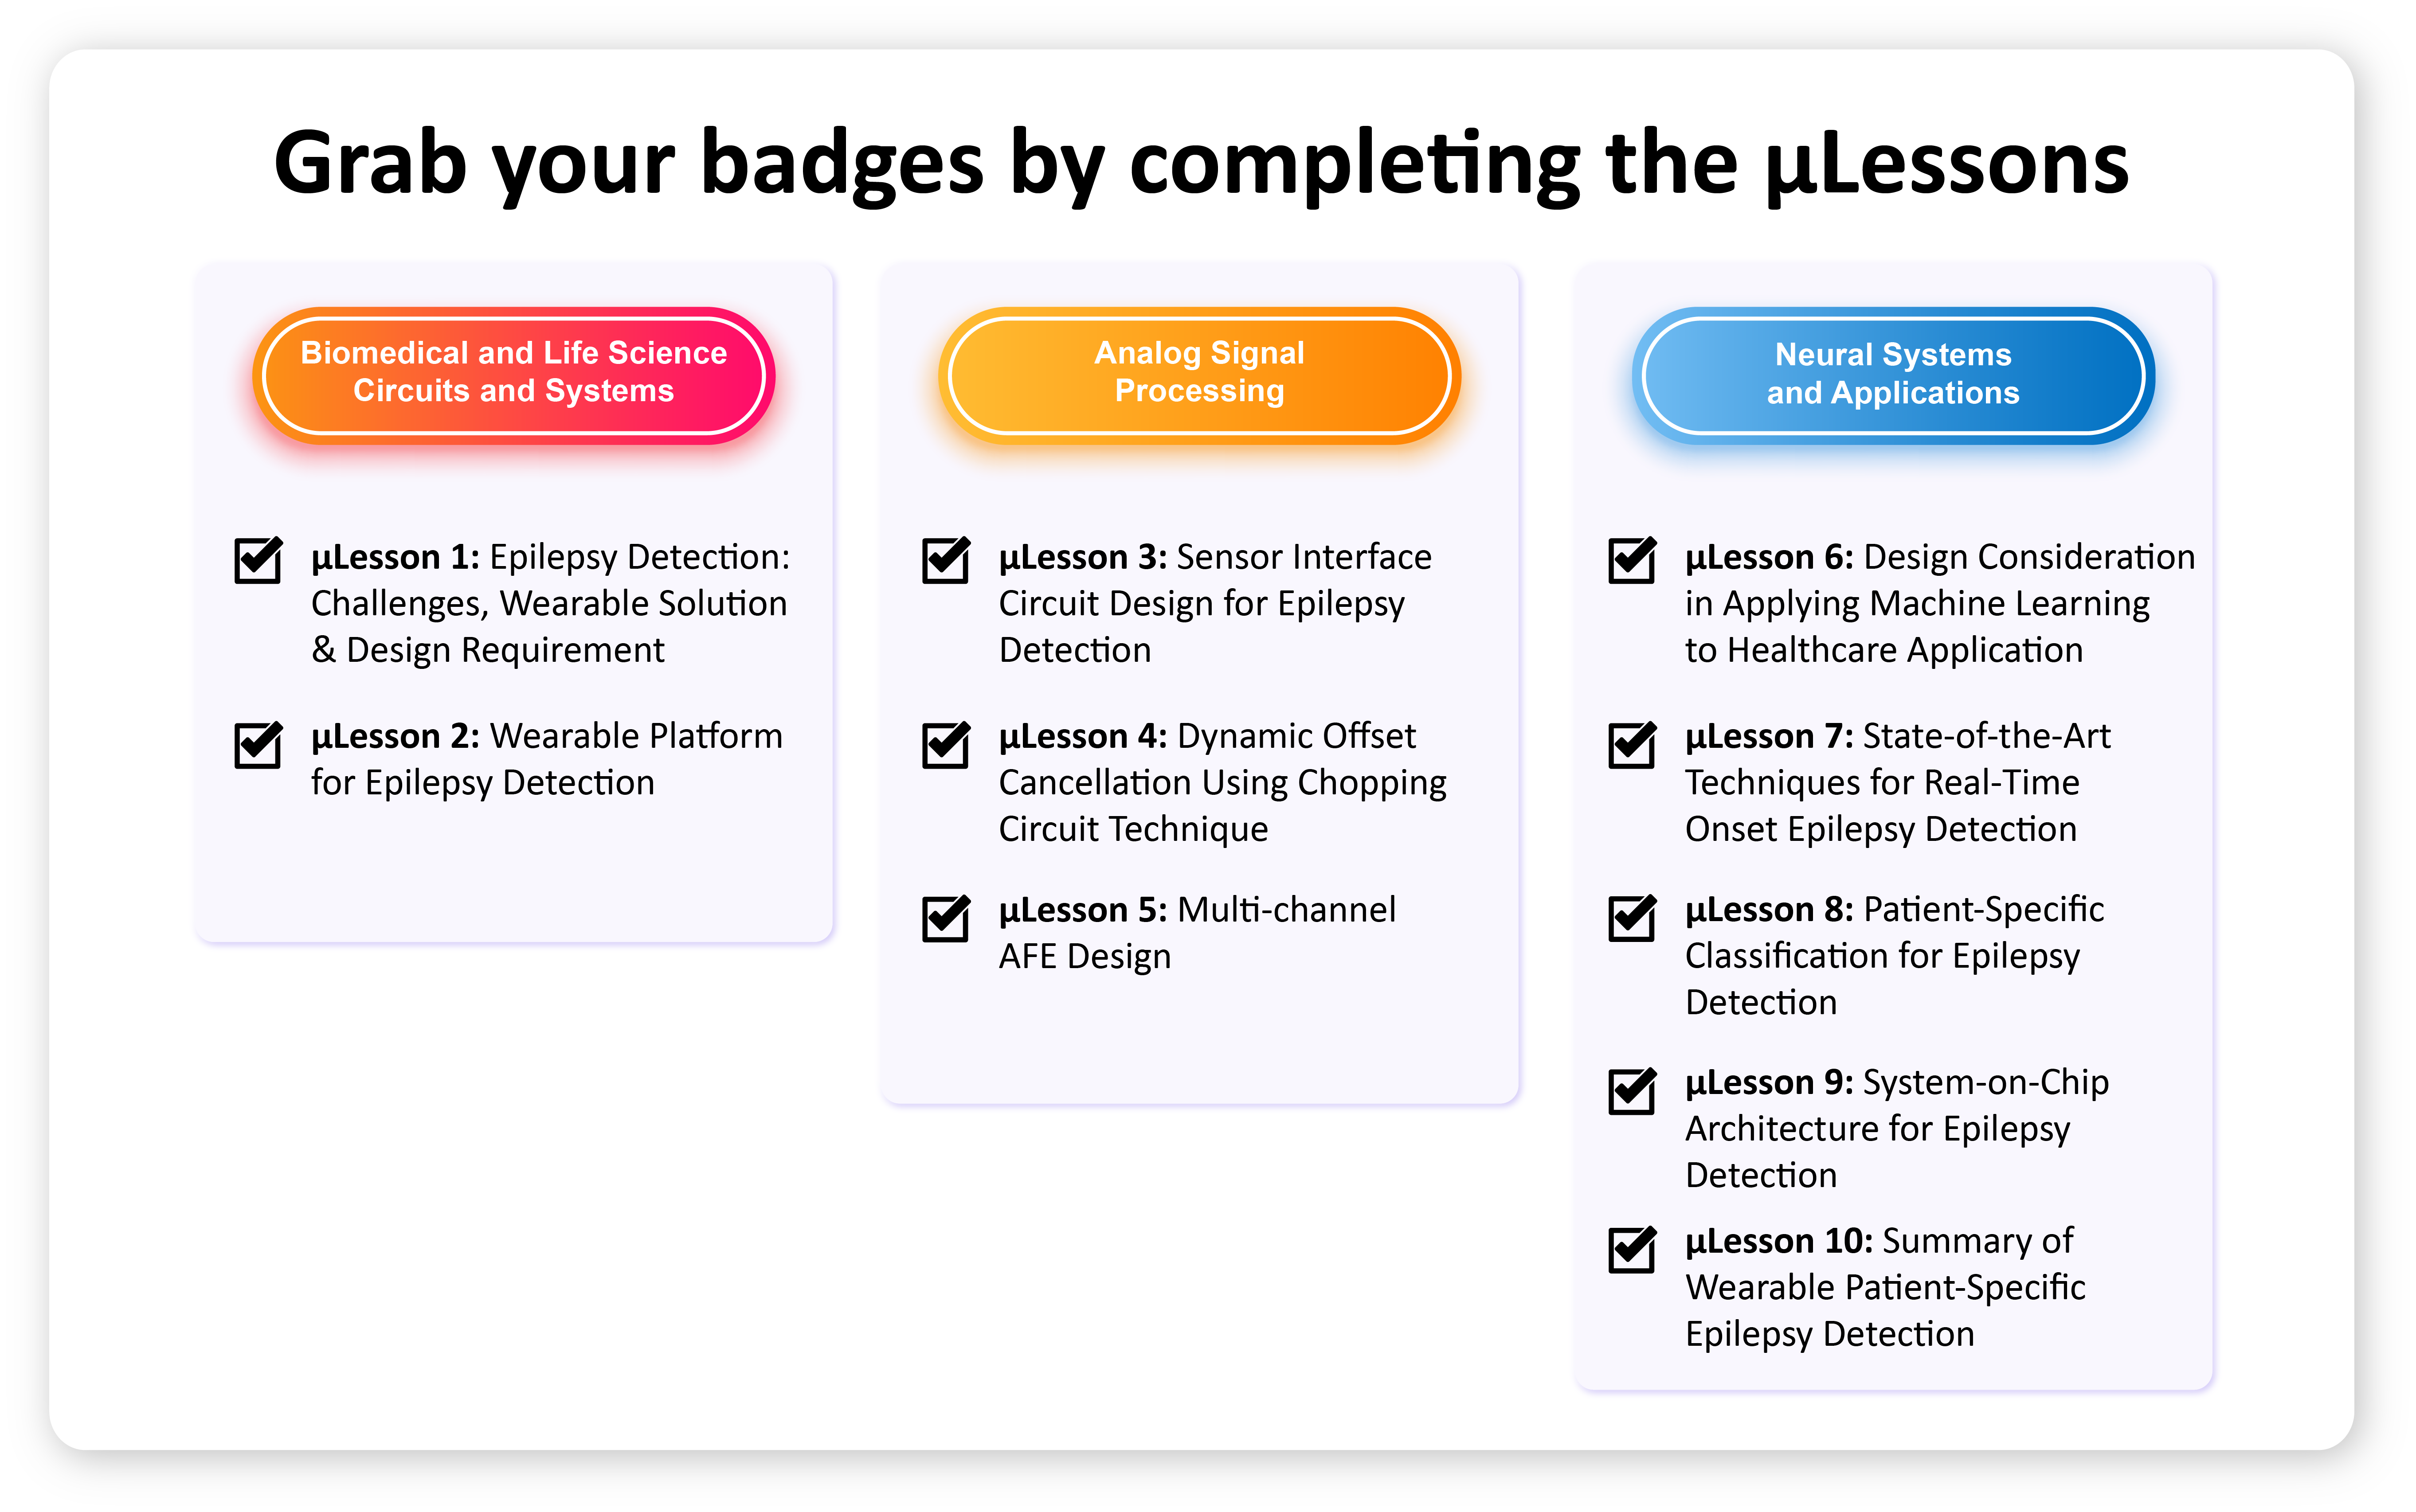 Learners earn badges by completing μlessons